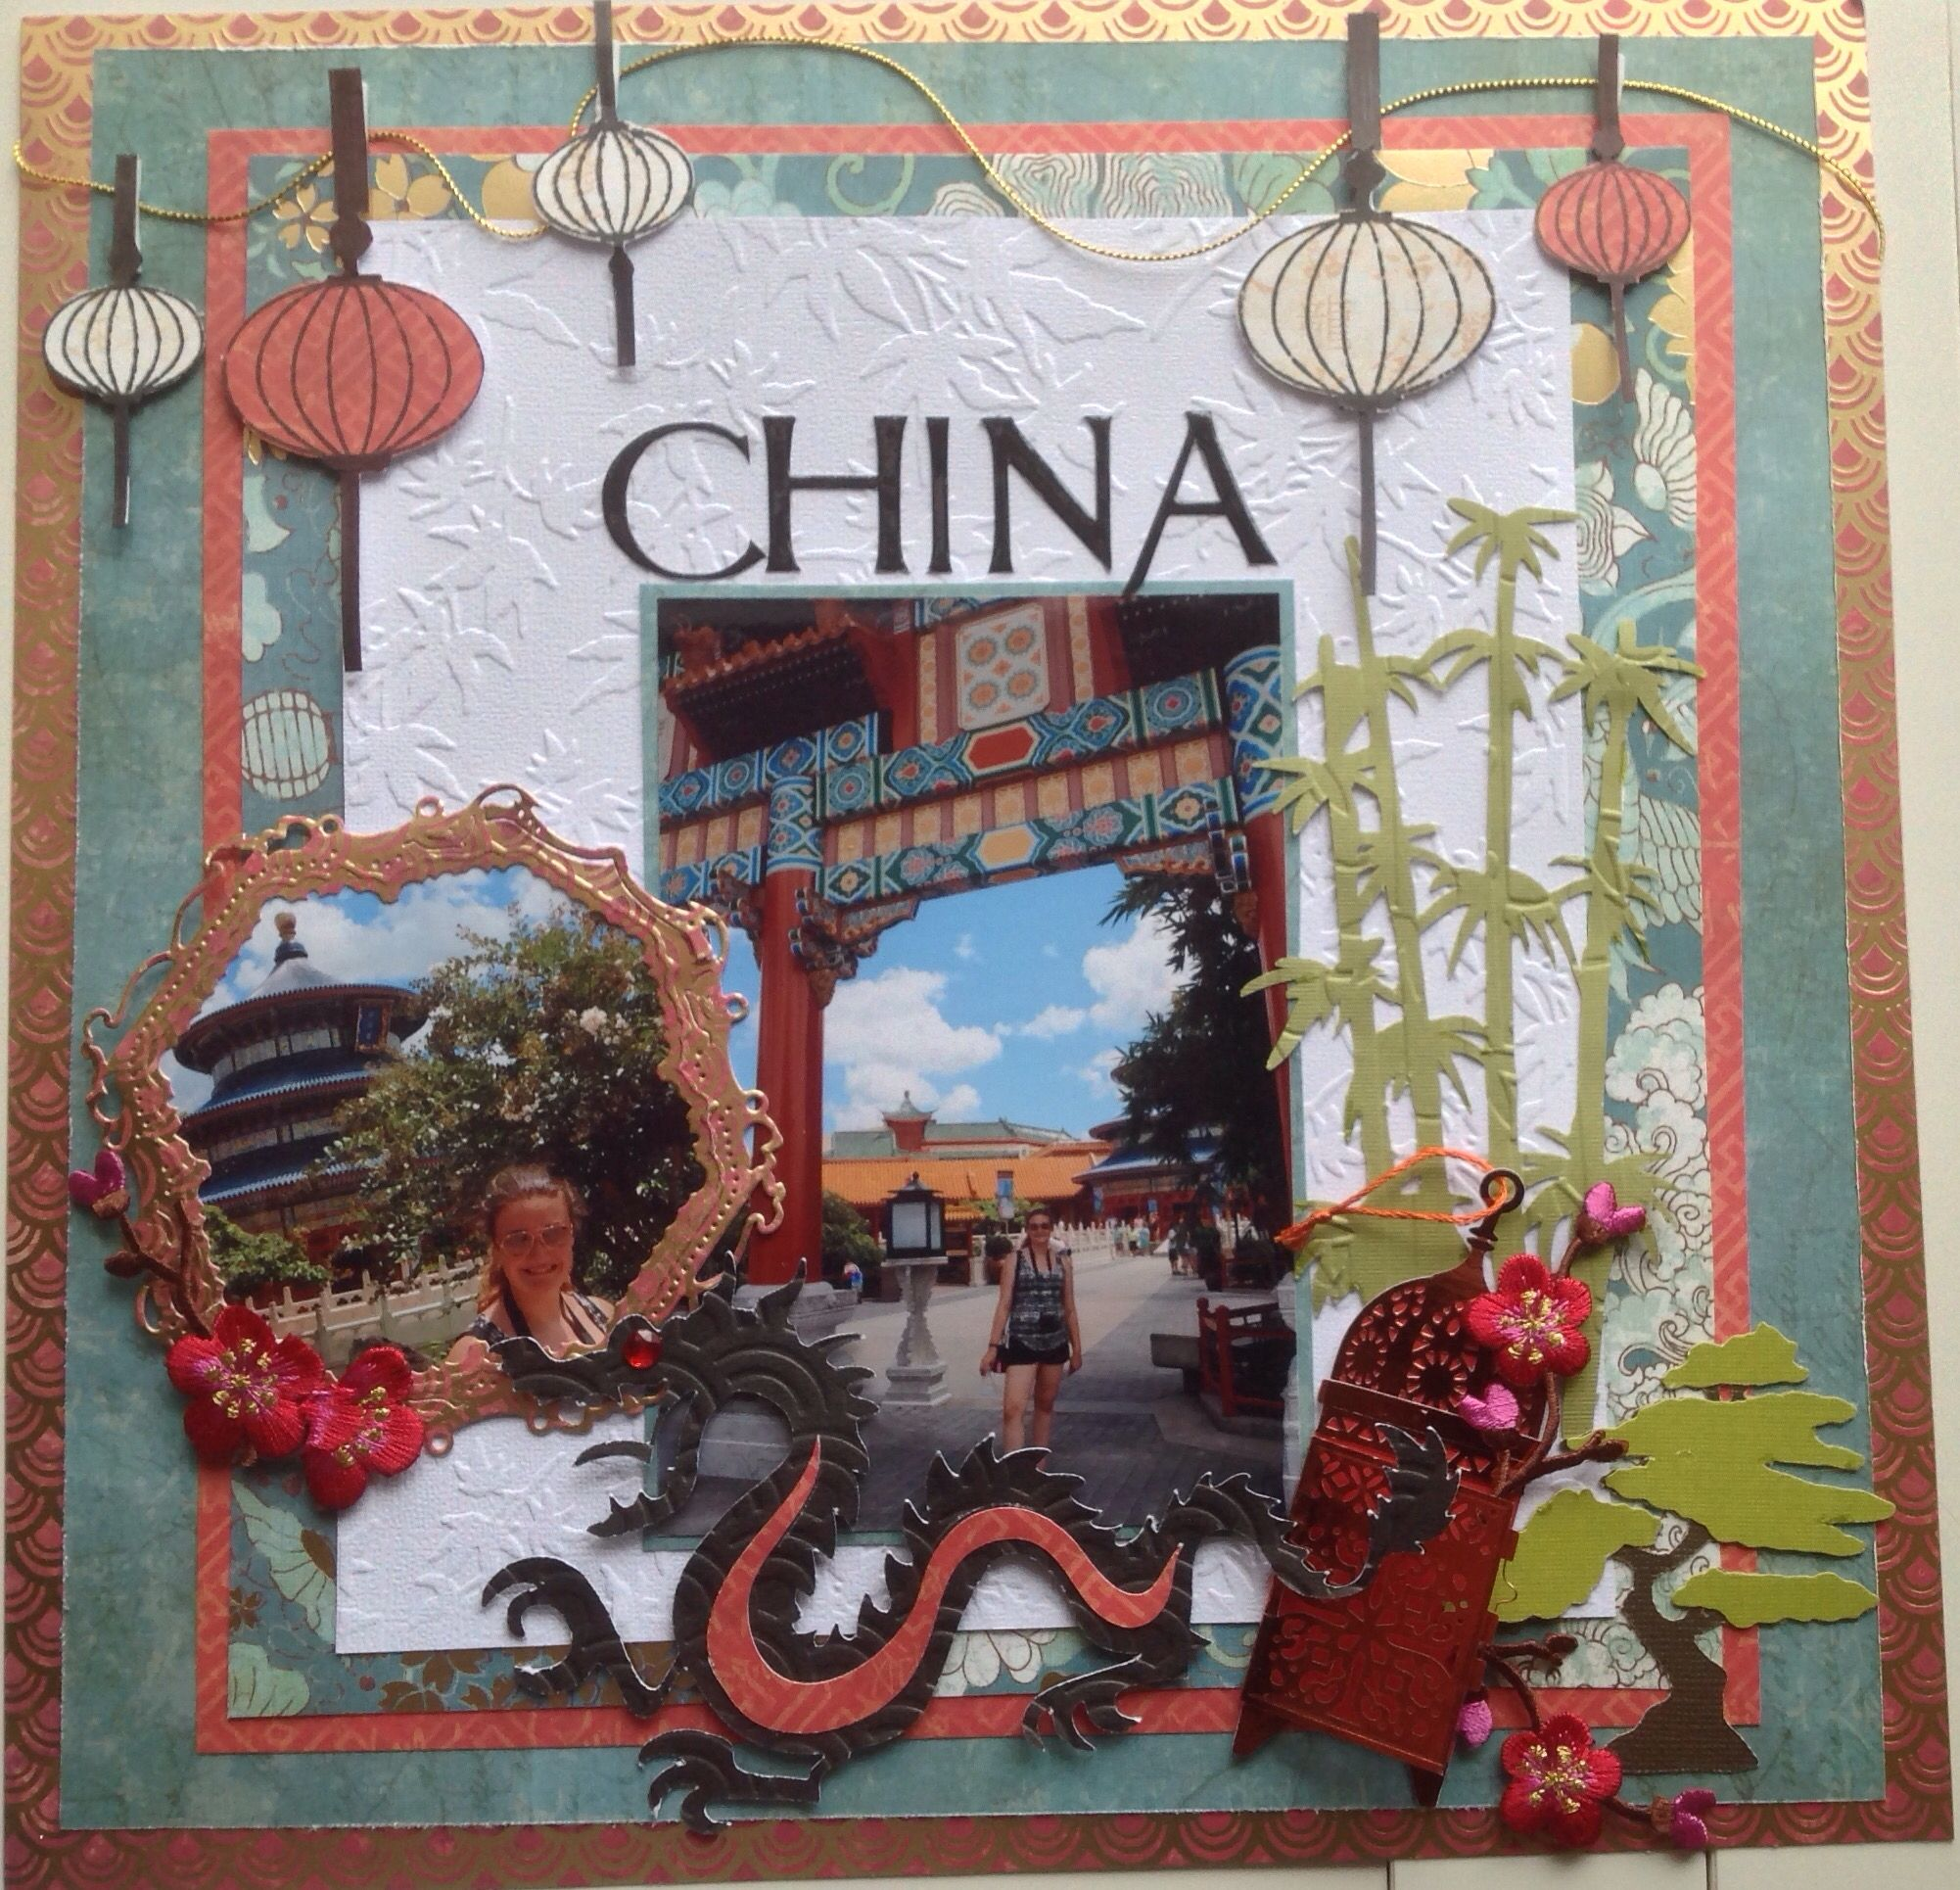 Scrapbook ideas china - Disney Related Scrapbooking Layouts And Projects For Those Disneyland And Disneyworld Trips Disney Movies Parties And So Much More Featuring Mickey Minnie